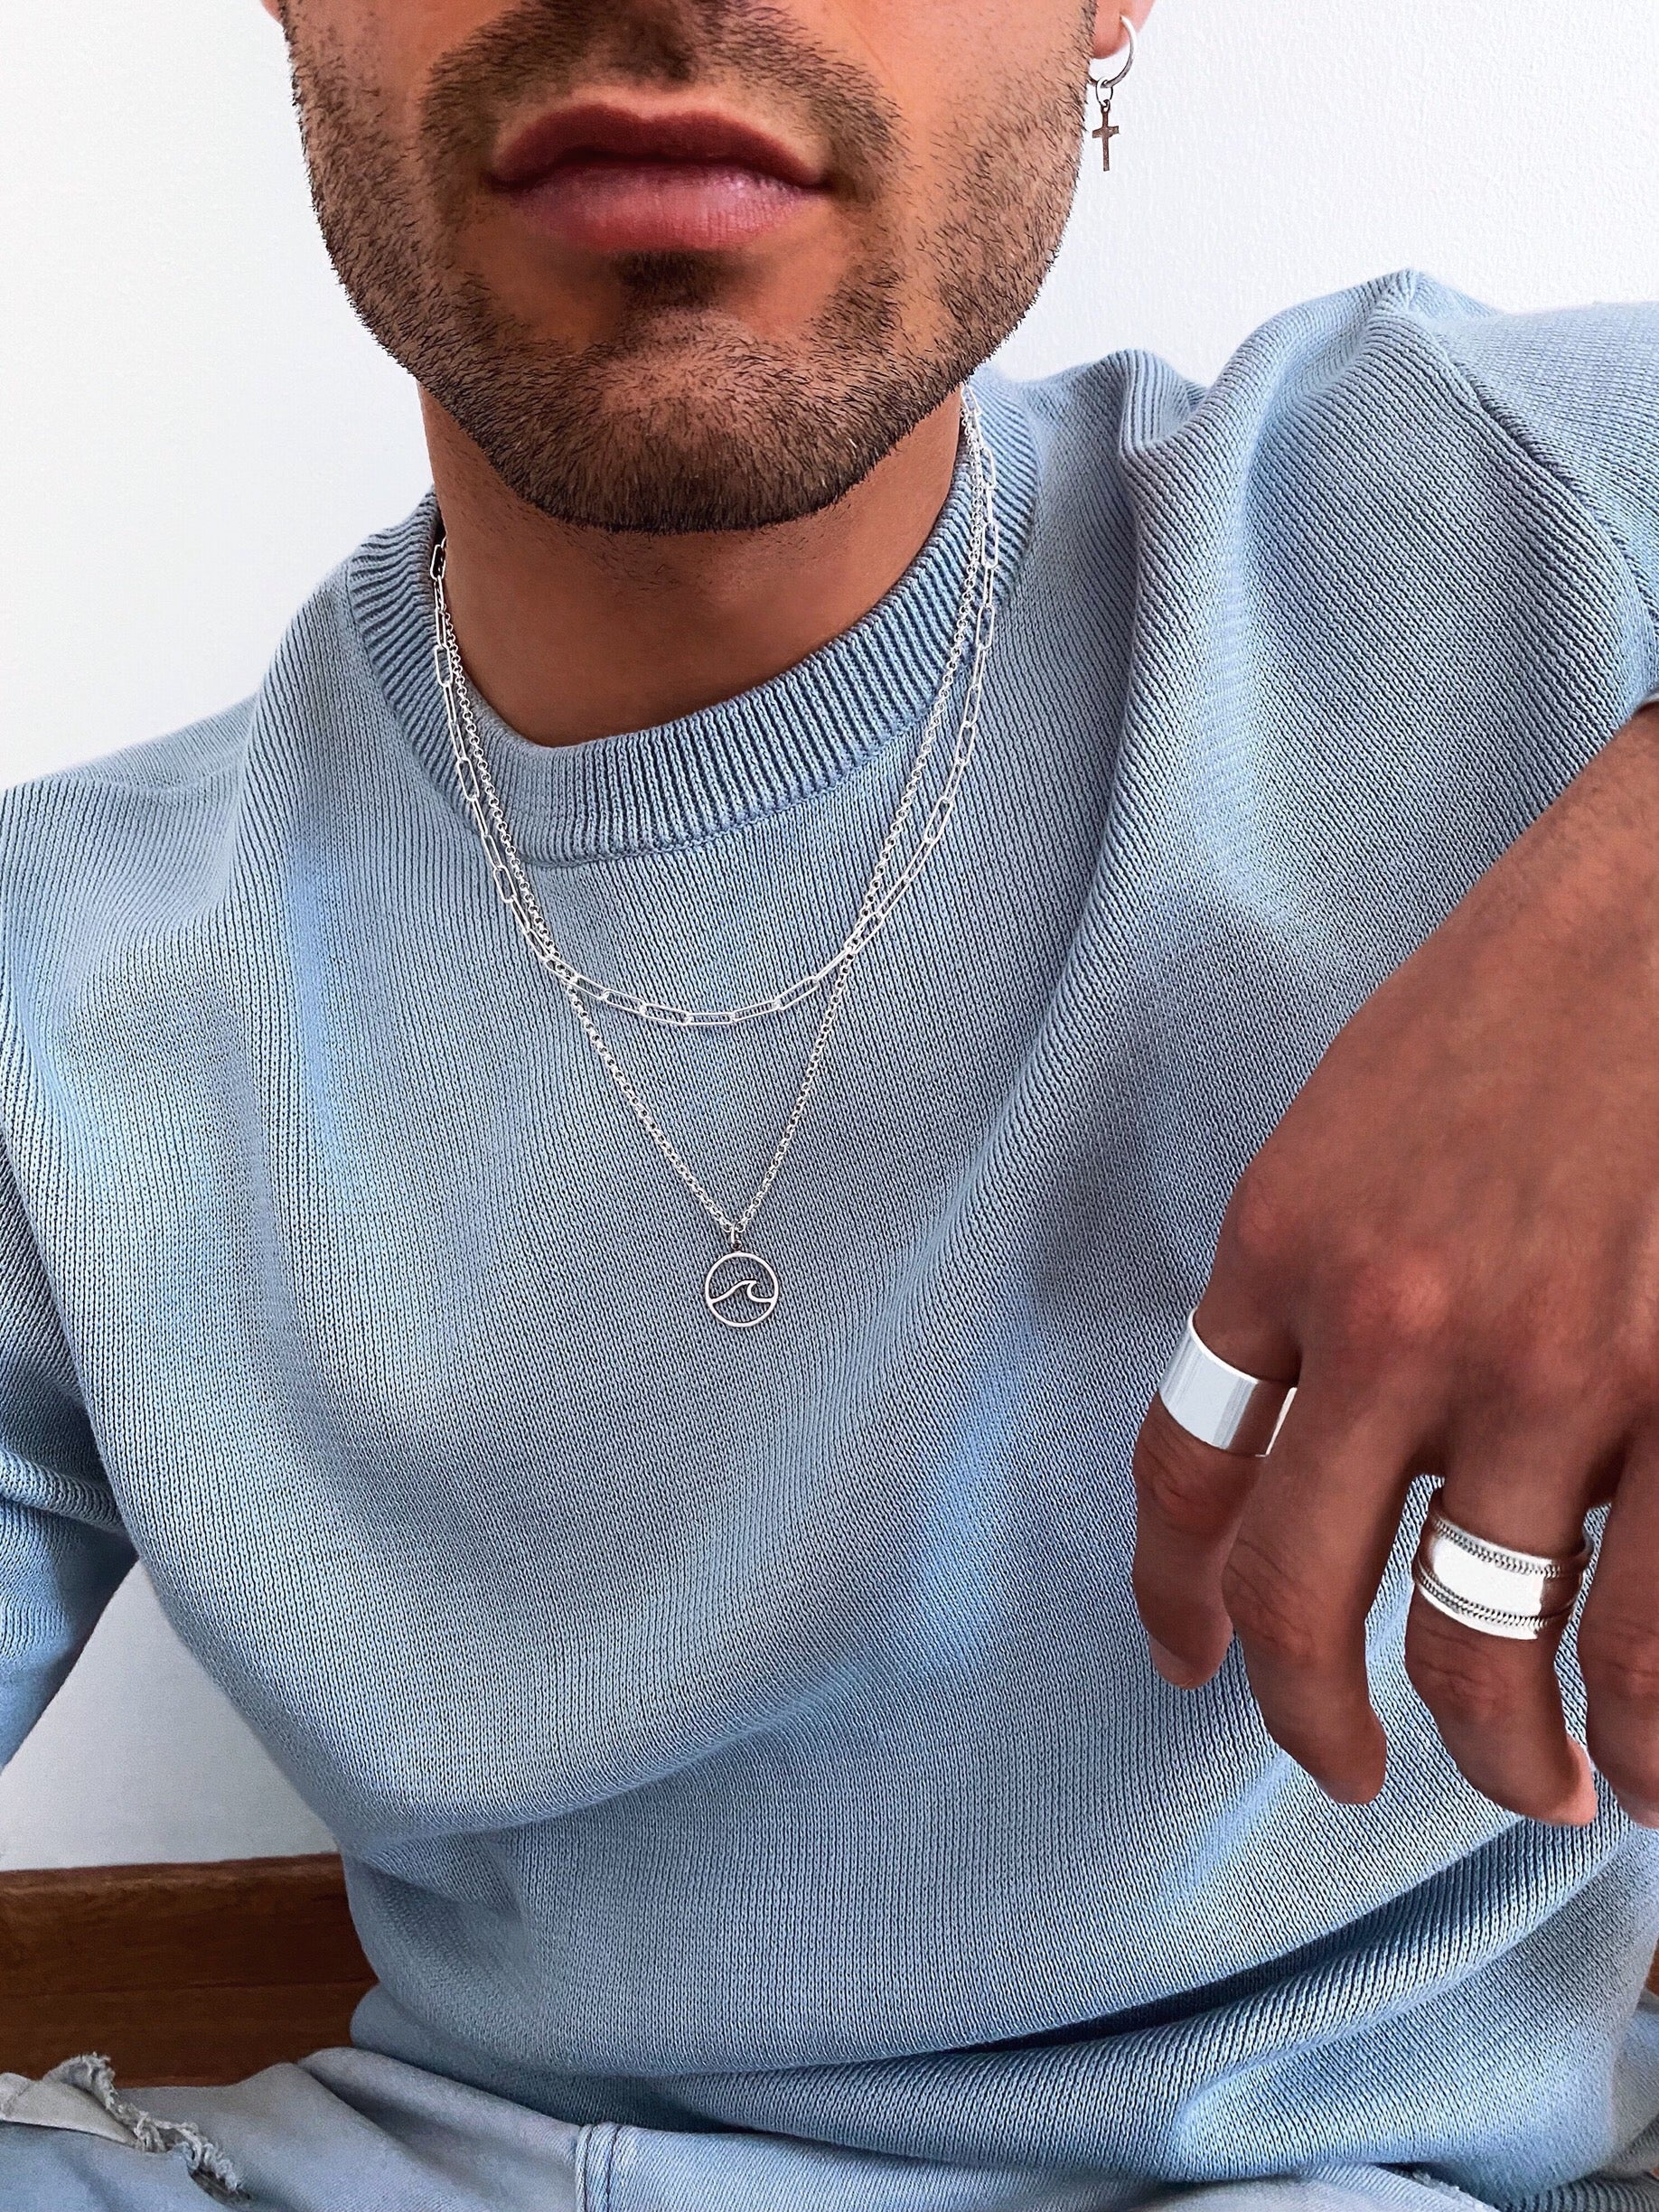 Necklace with pendants and chains for men